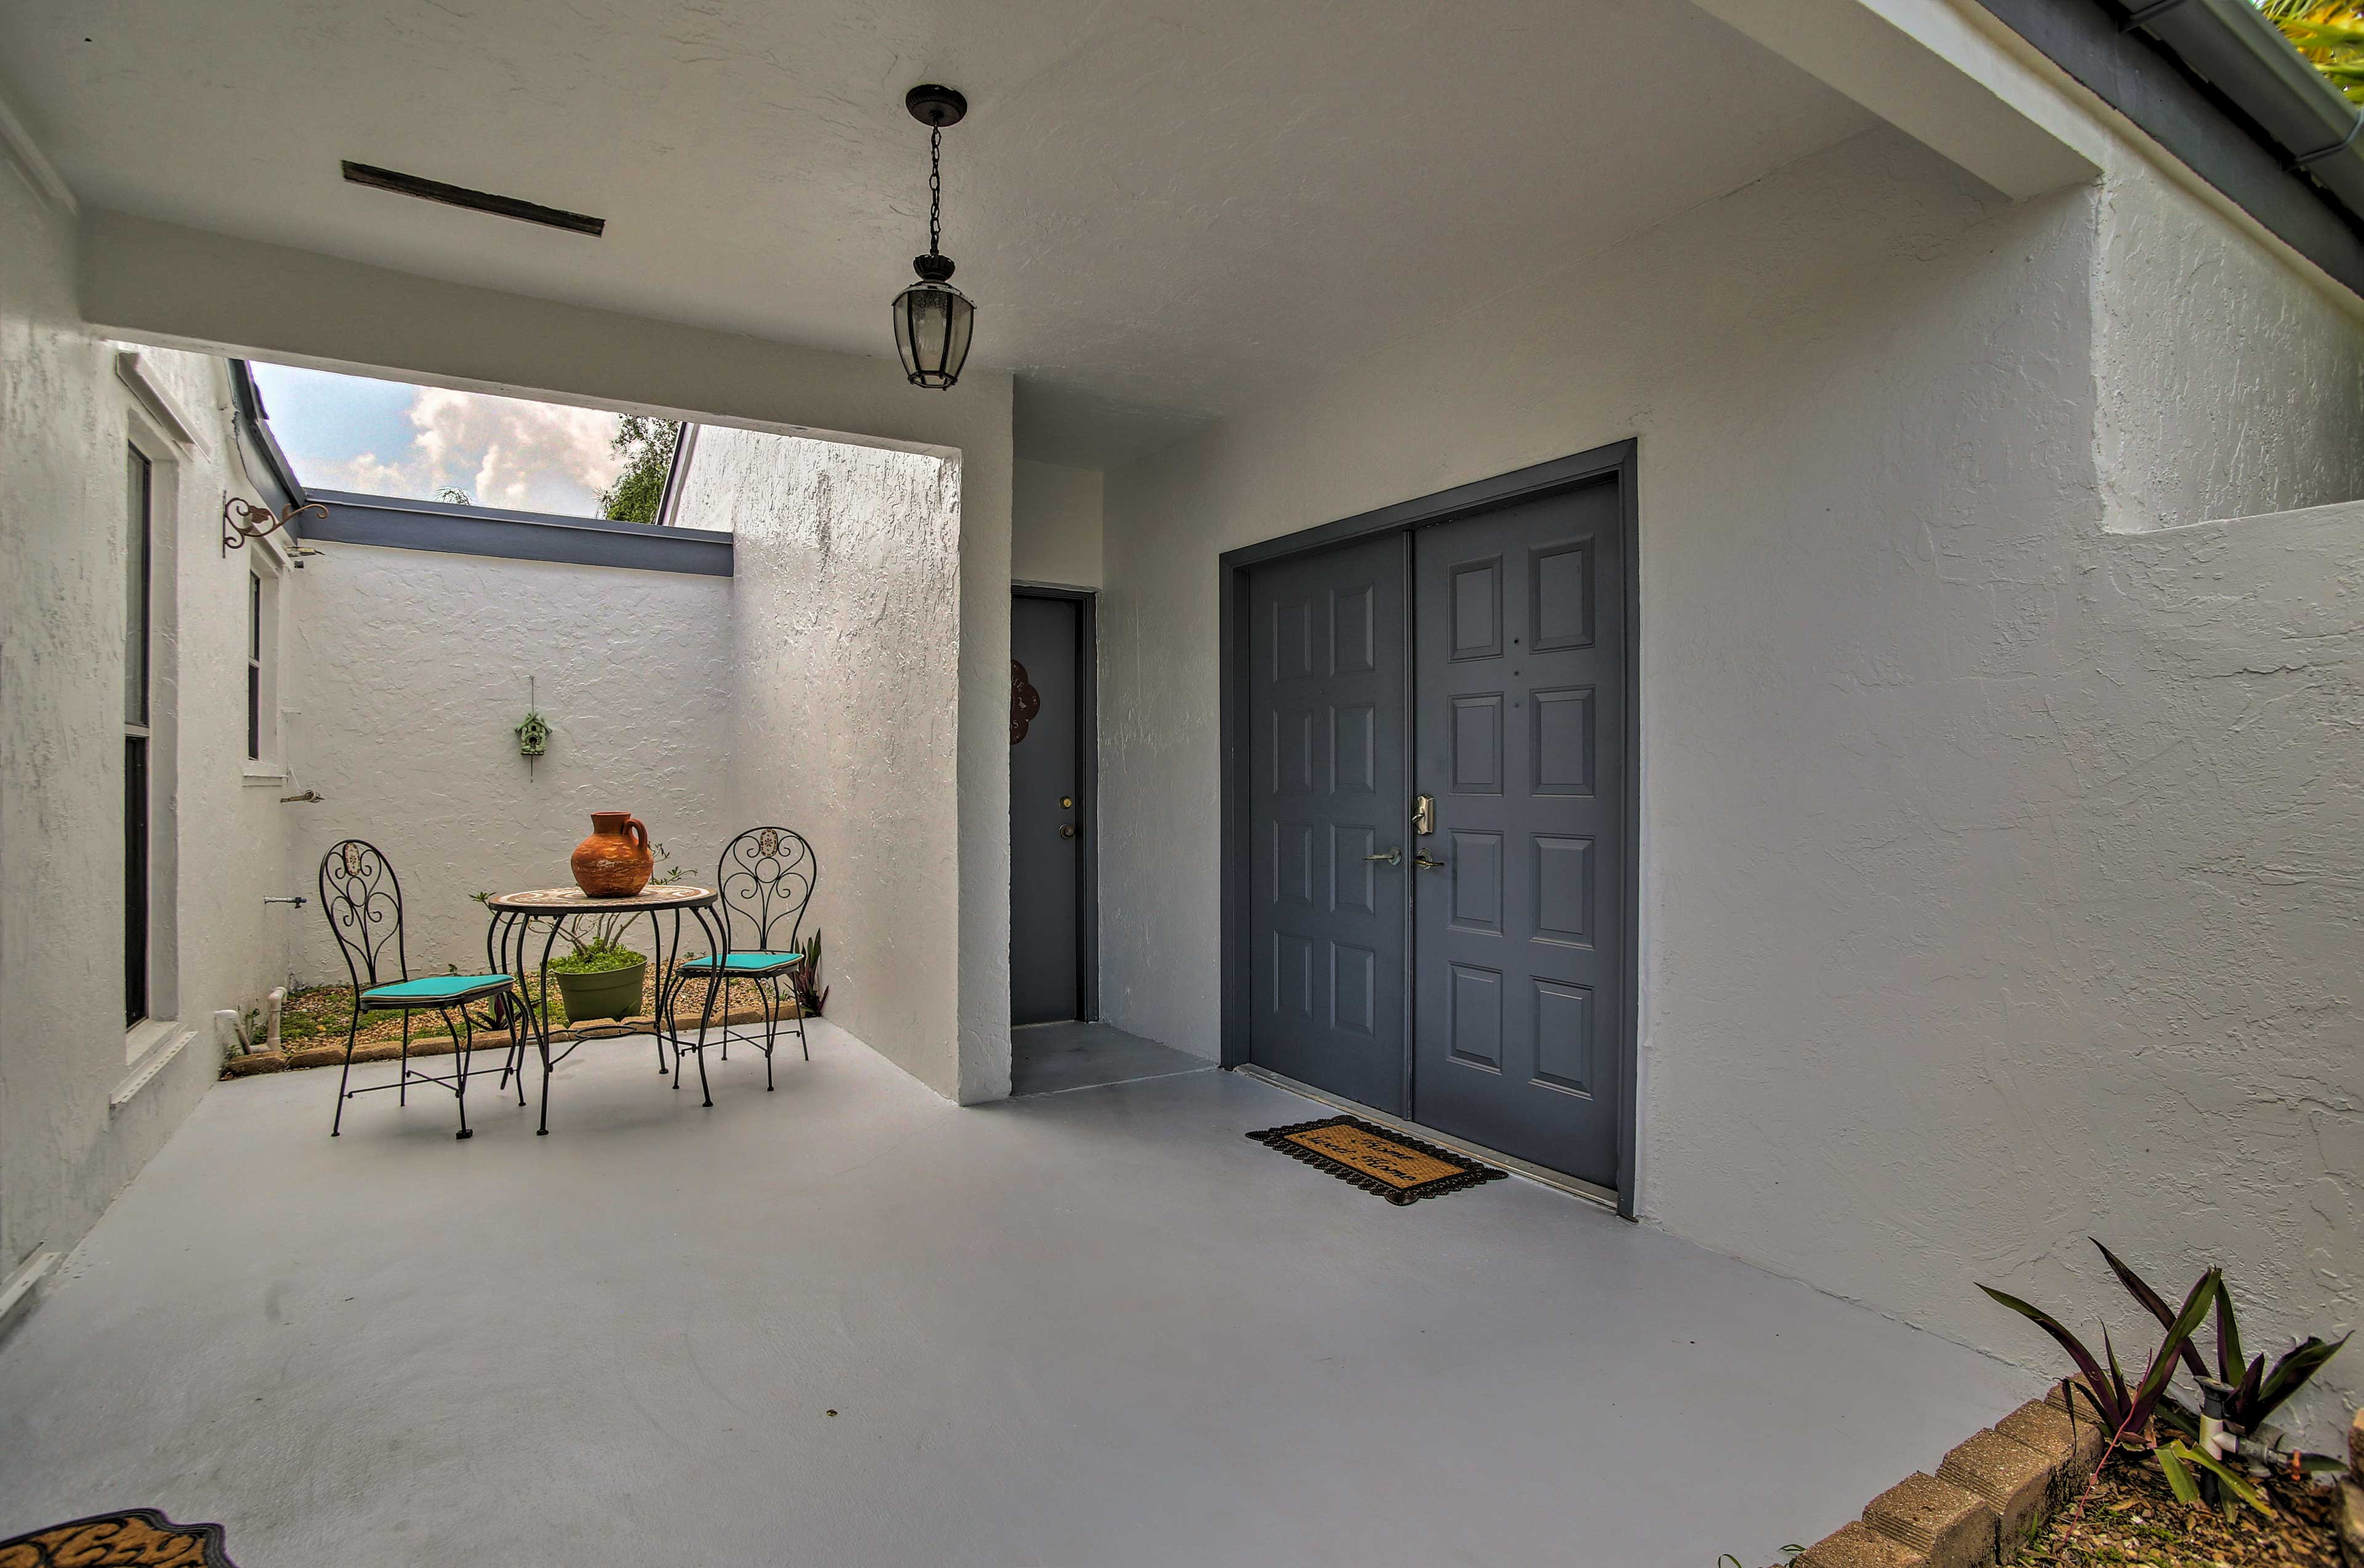 The covered patio is a great place to enjoy some fresh air.